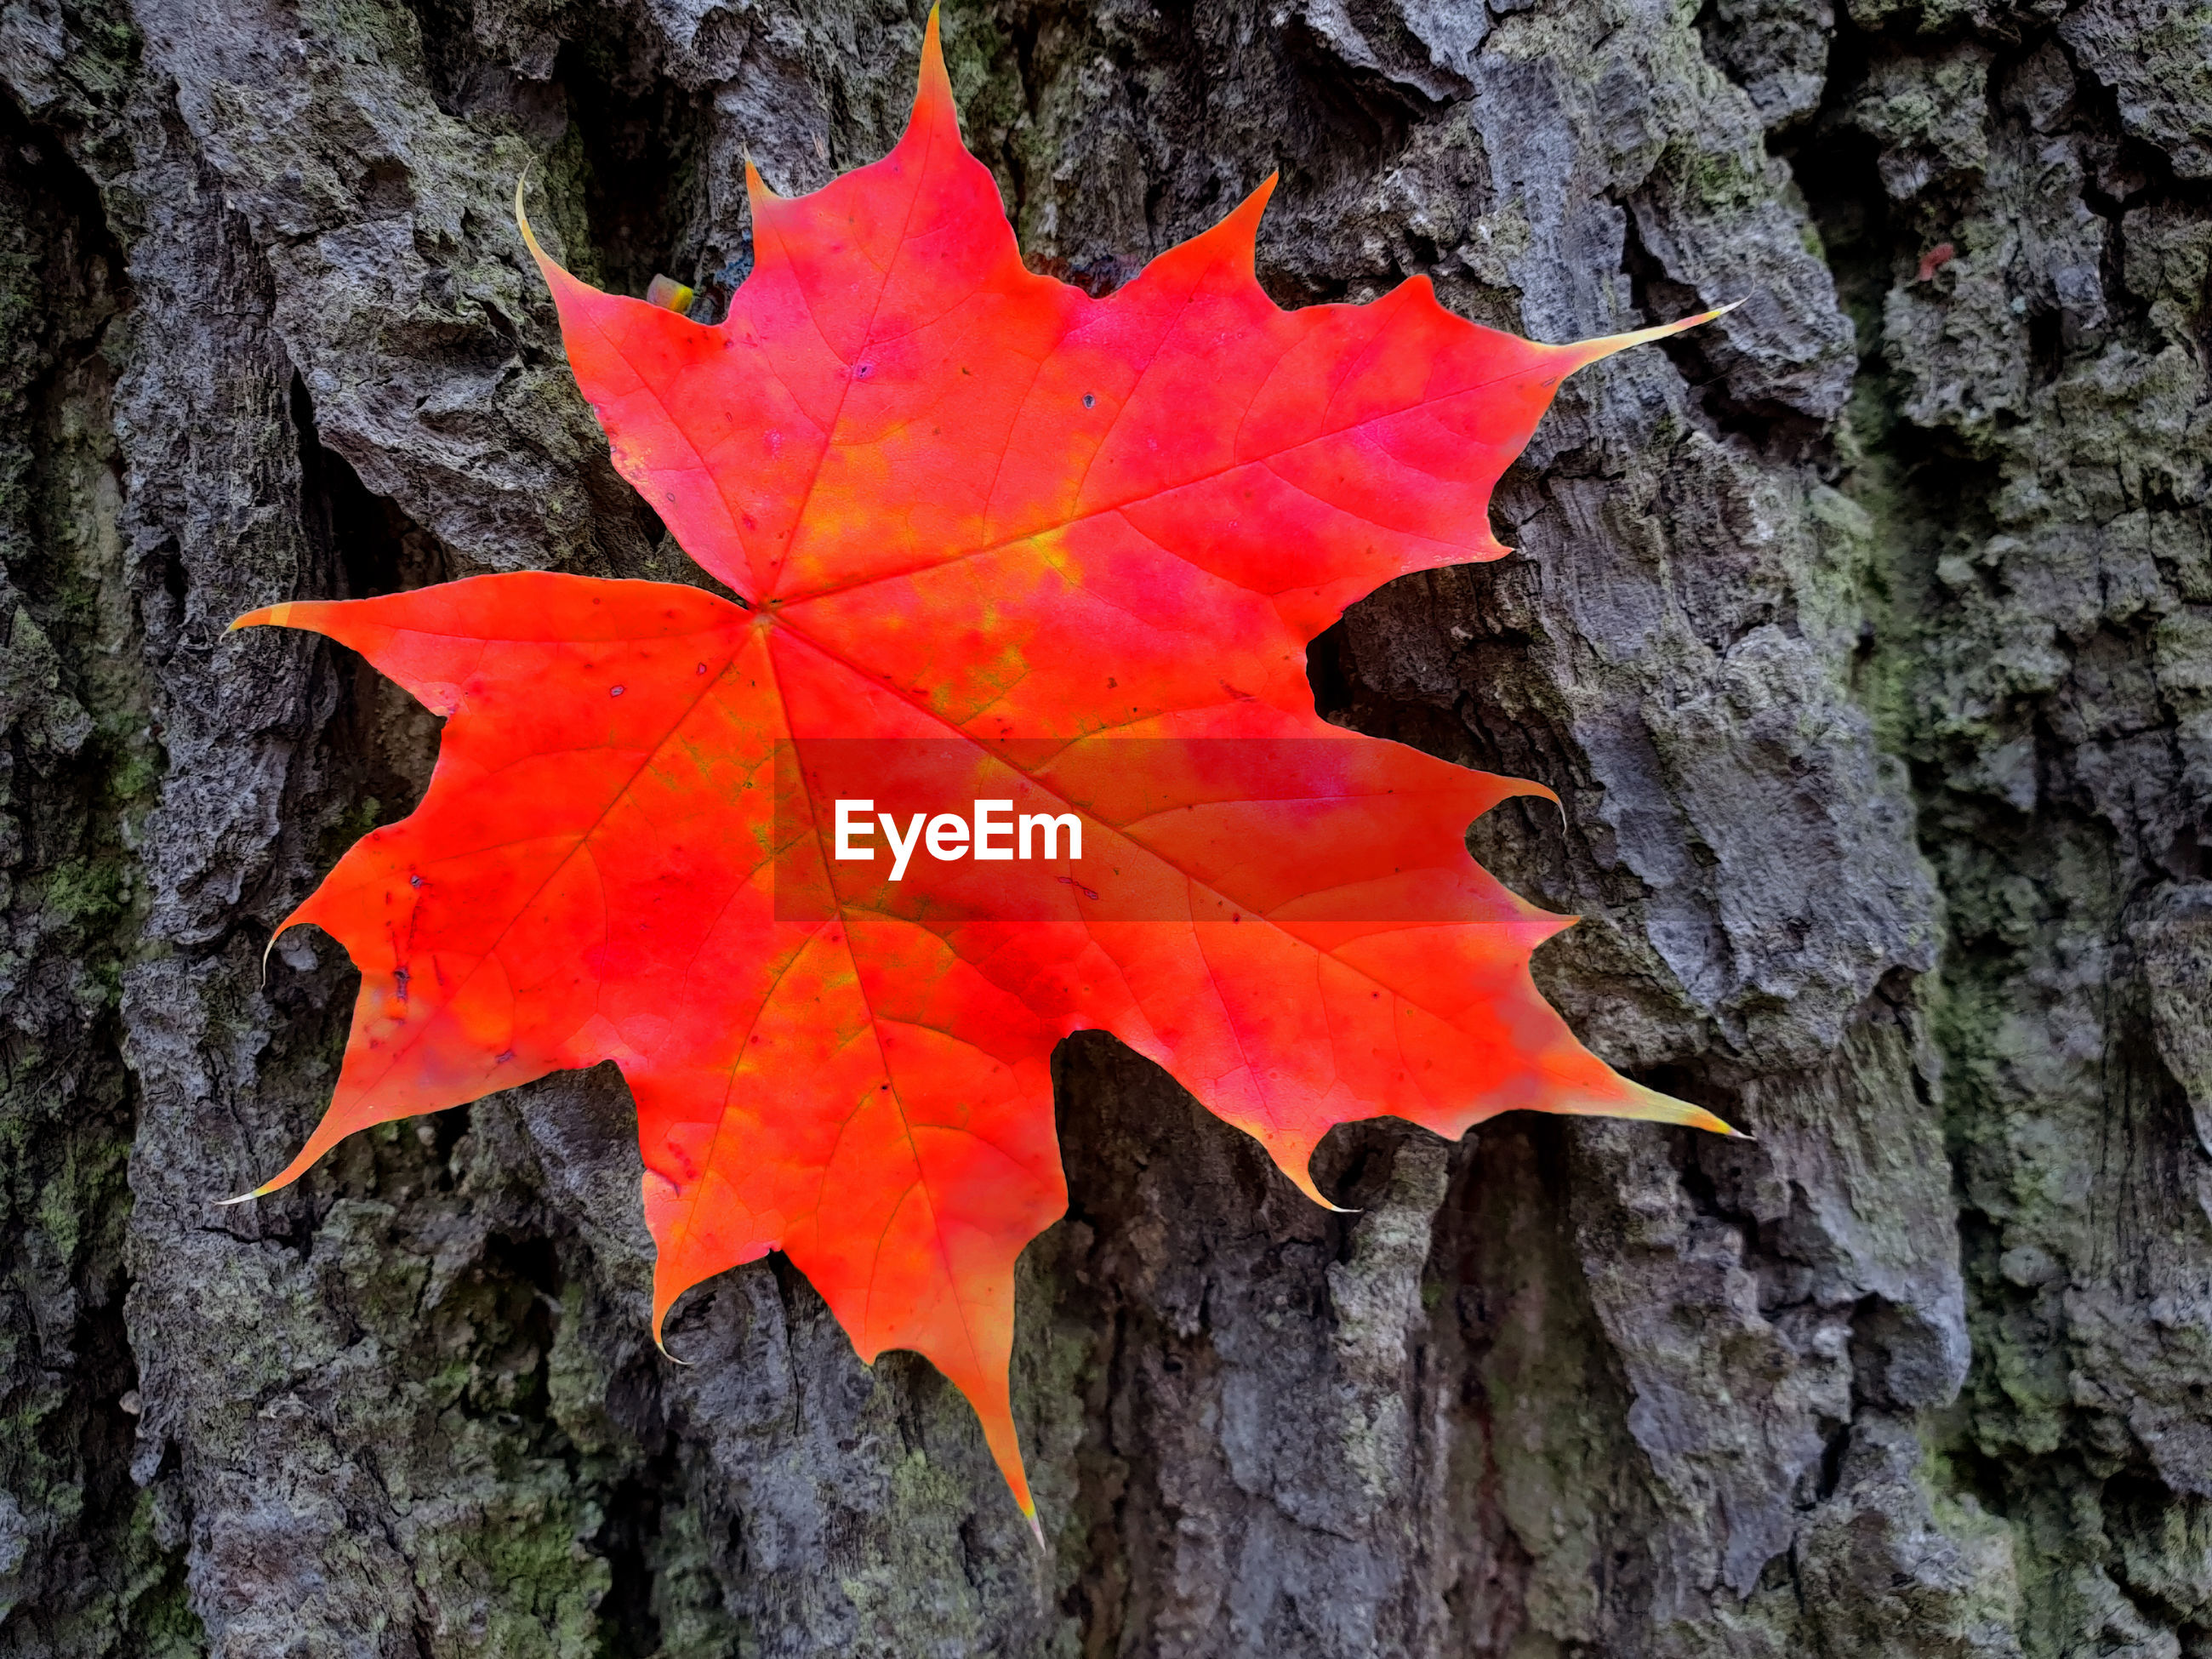 CLOSE-UP OF RED MAPLE LEAVES ON TREE TRUNK